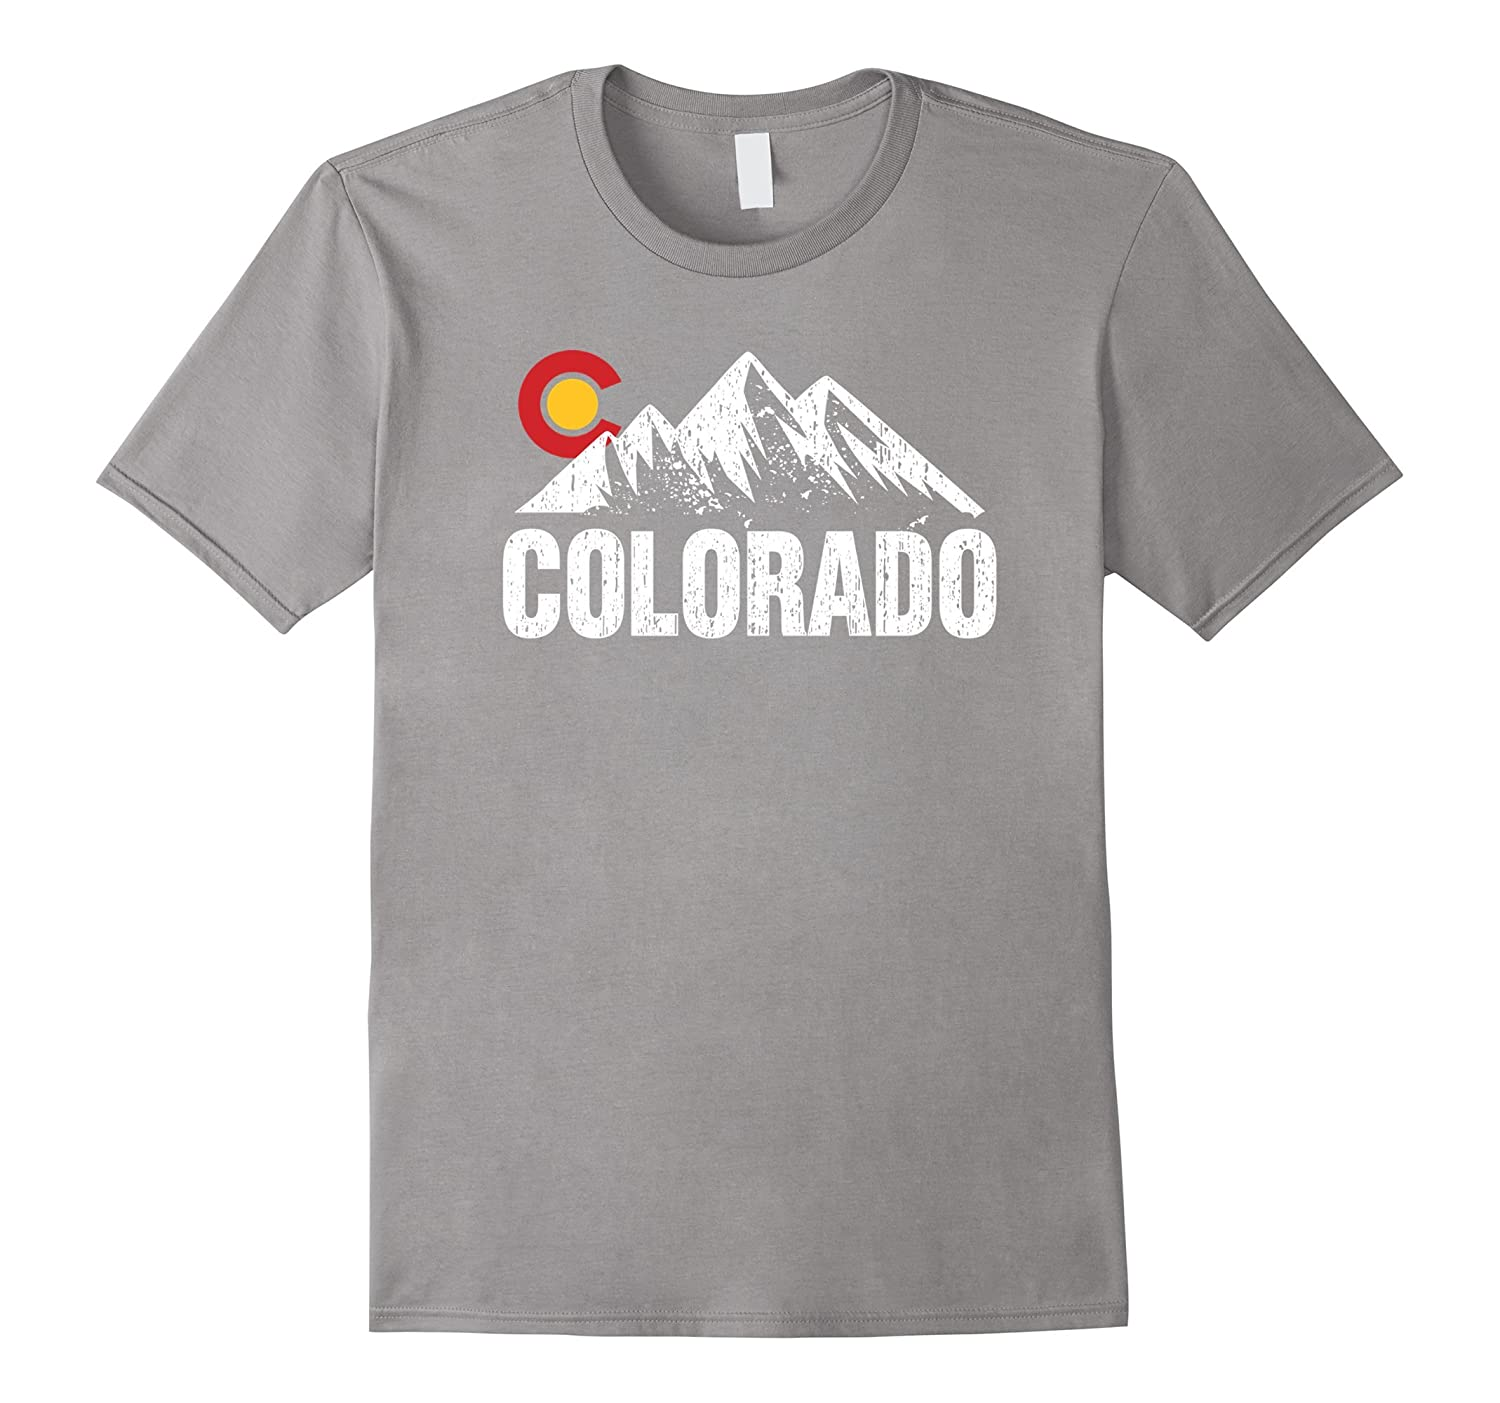 Distressed Colorado With Mountains Graphic T-shirt-FL